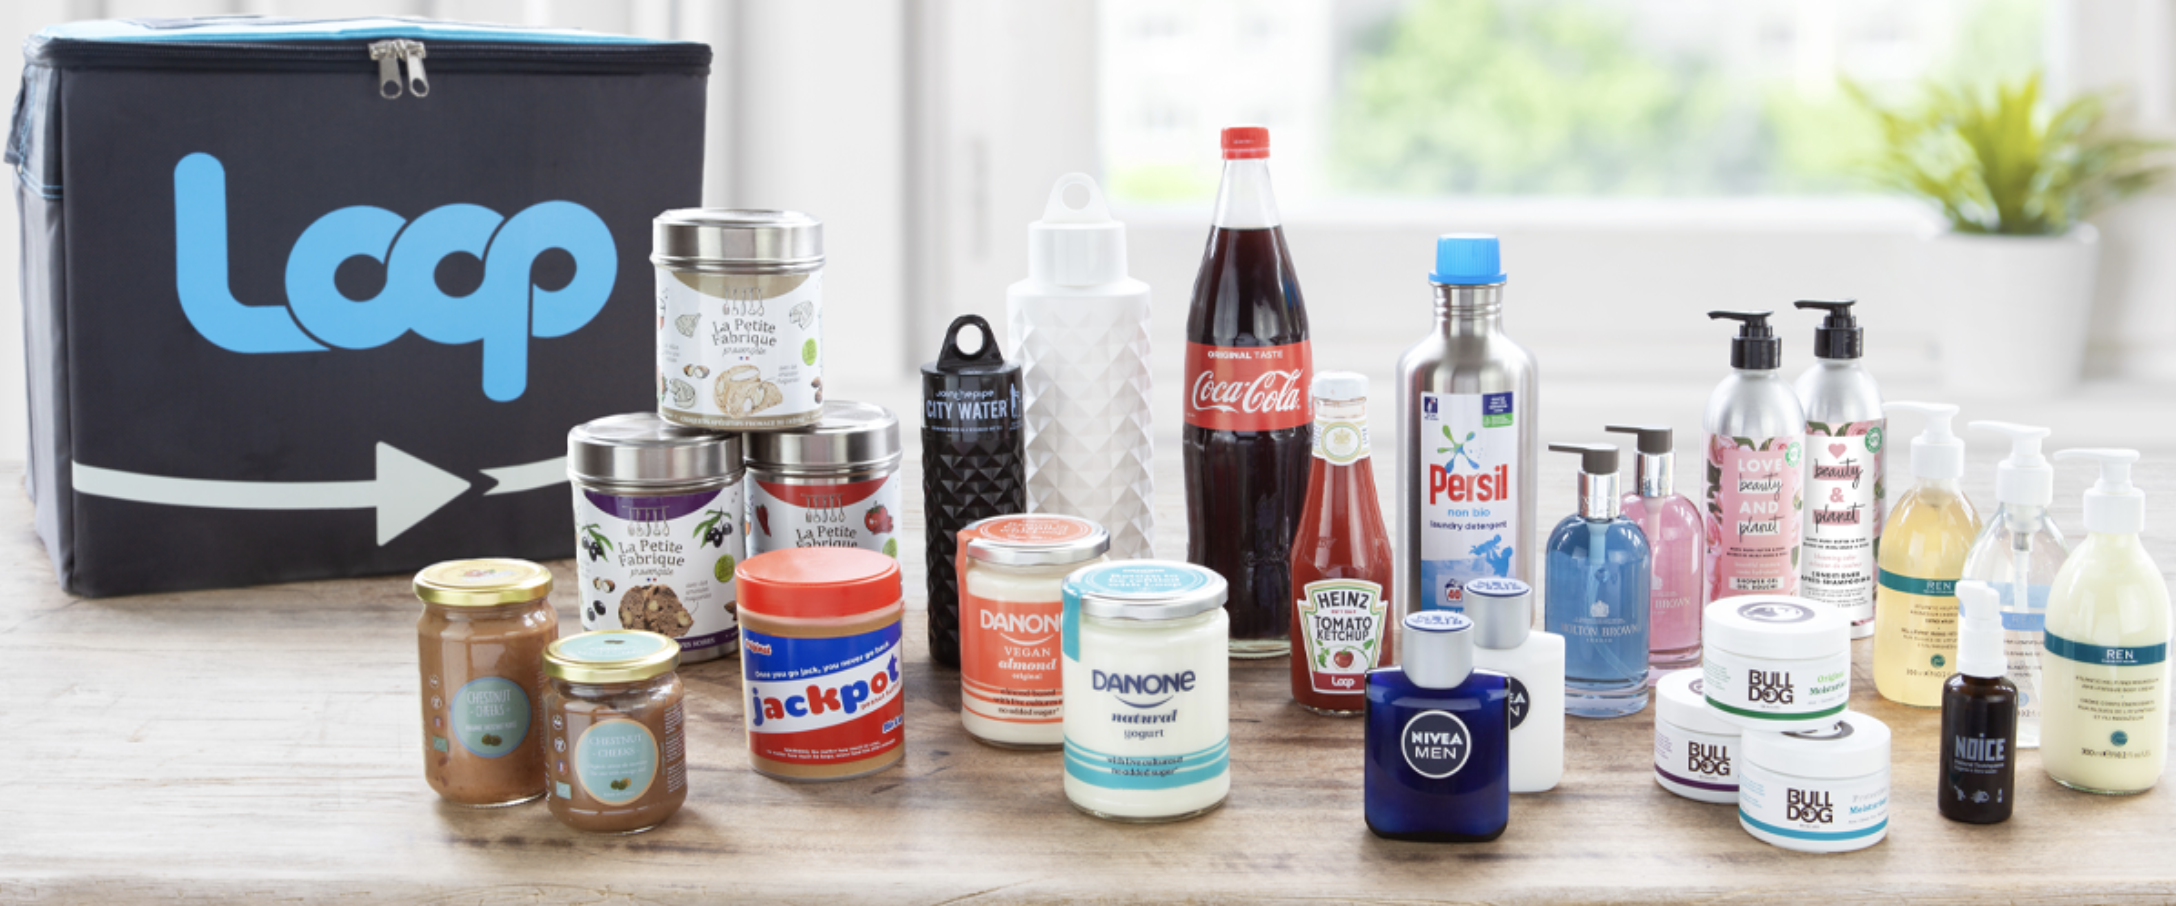 A variety of groceries and household products in reusable containers